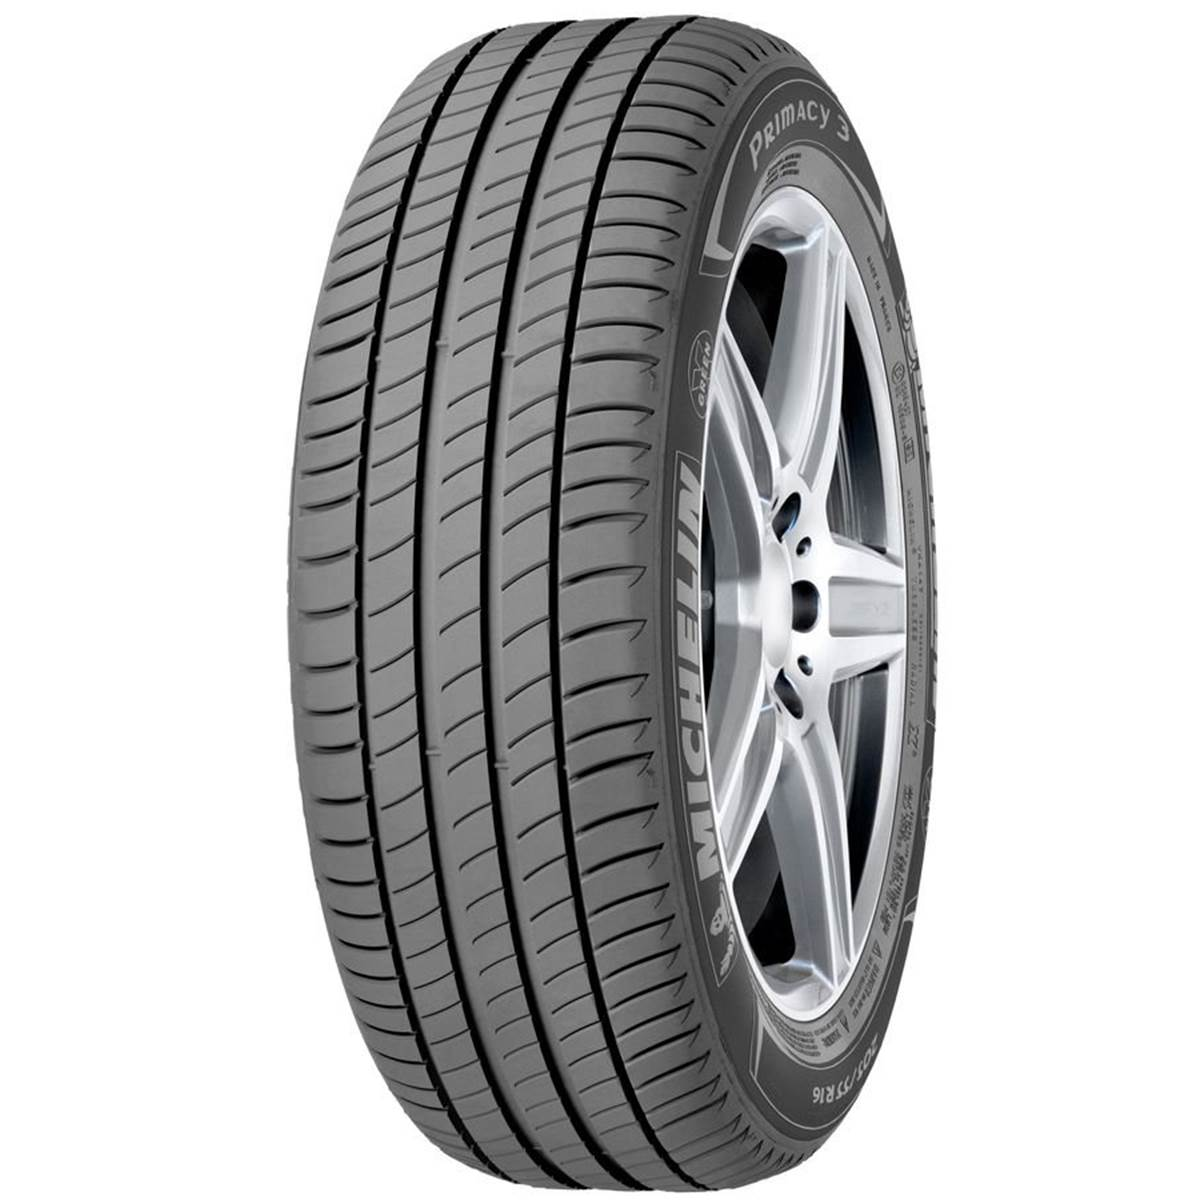 Pneu Michelin 225/55R17 97Y PRIMACY 3 *